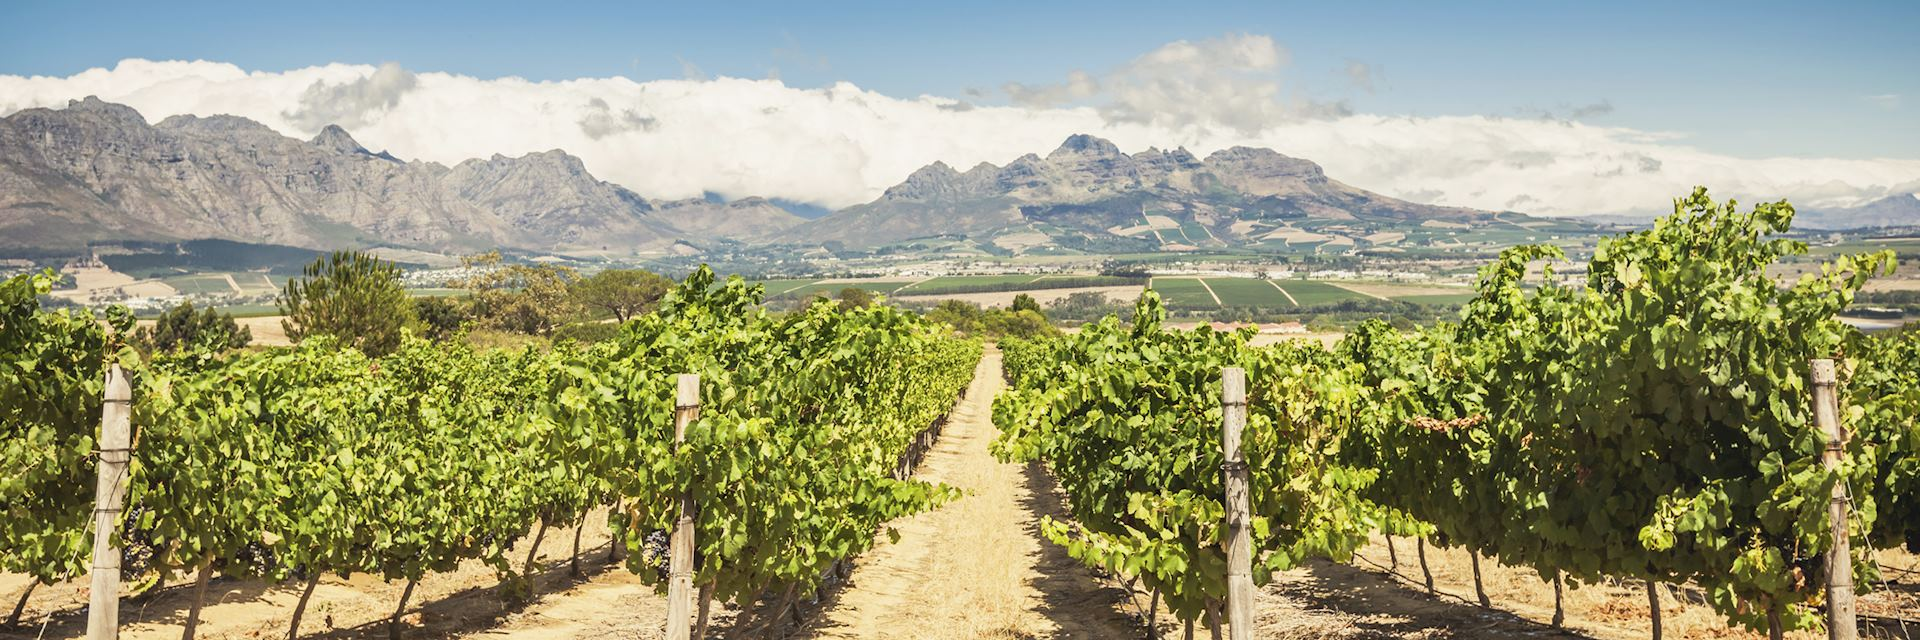 Vineyards, Stellenbosch